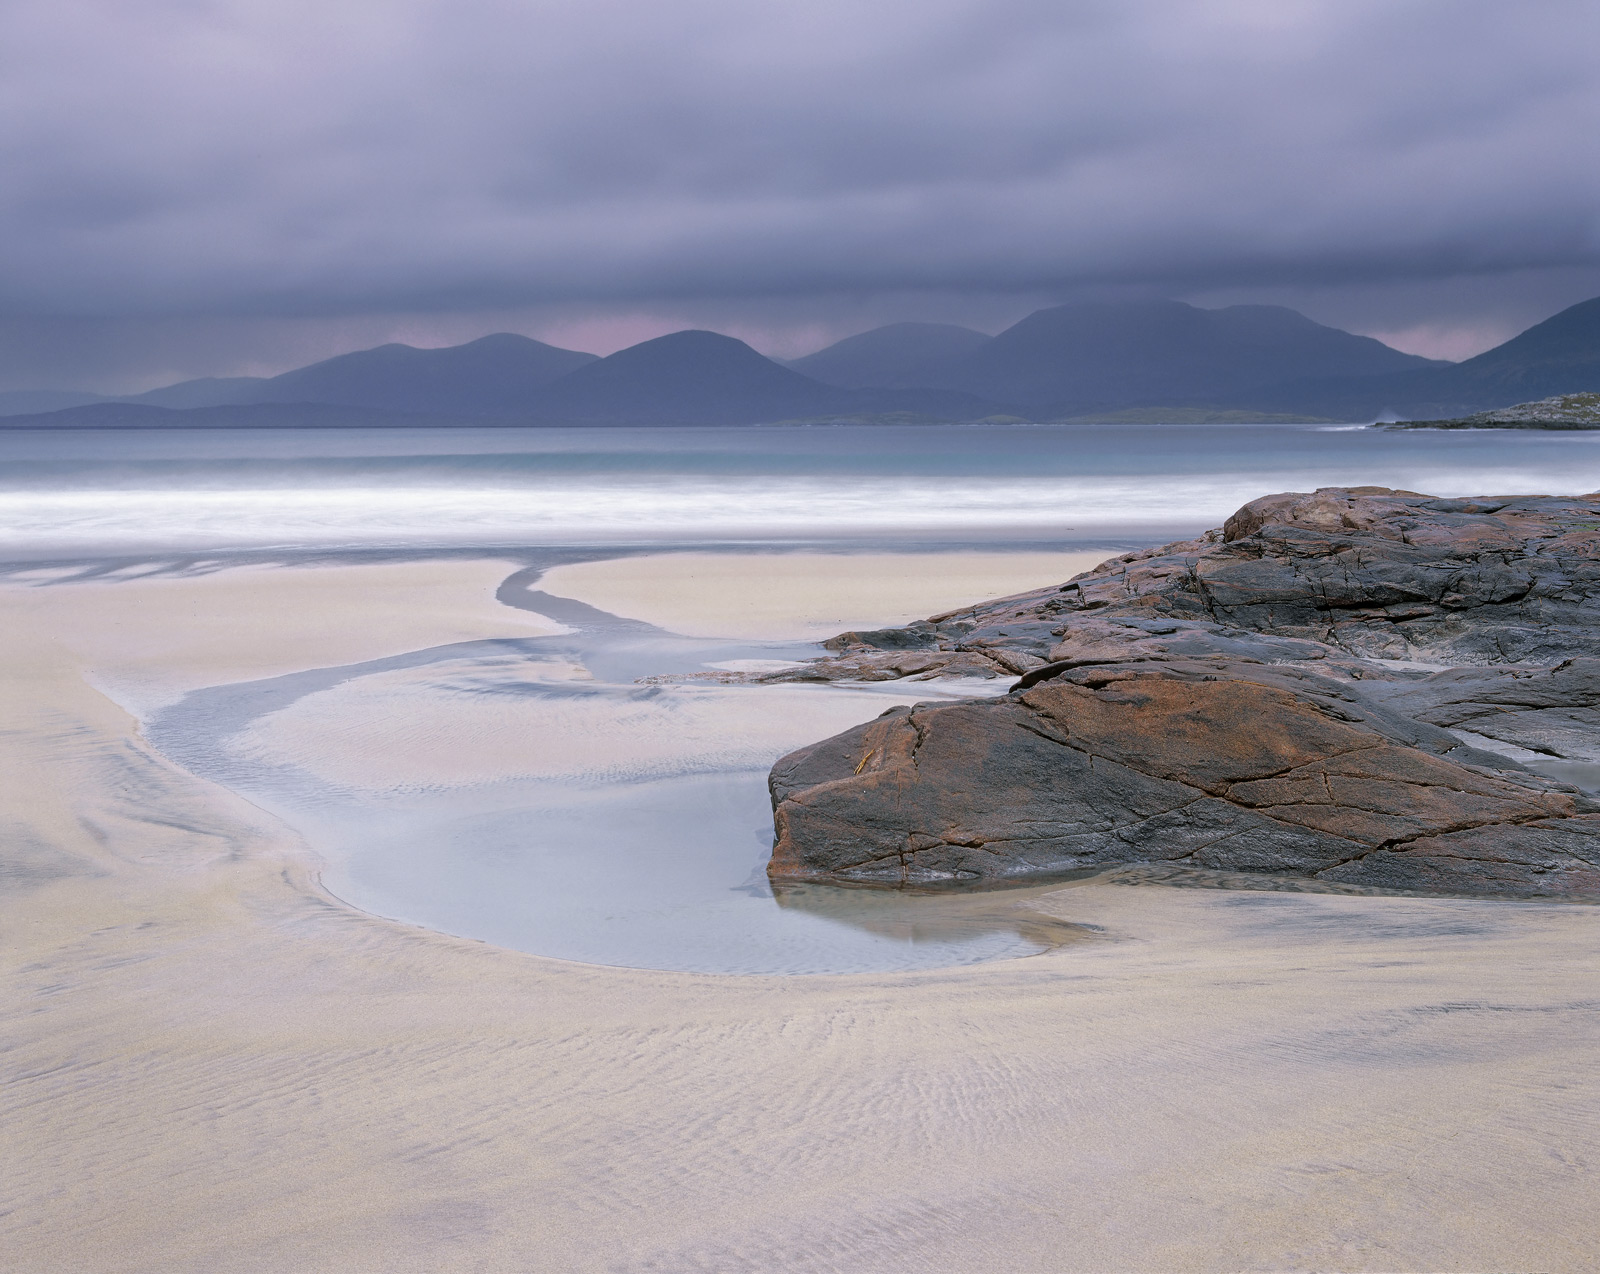 A heavy sky settled over the serrated teeth of Harris's distant peaks turning them a rich purple hue. The soft light at...